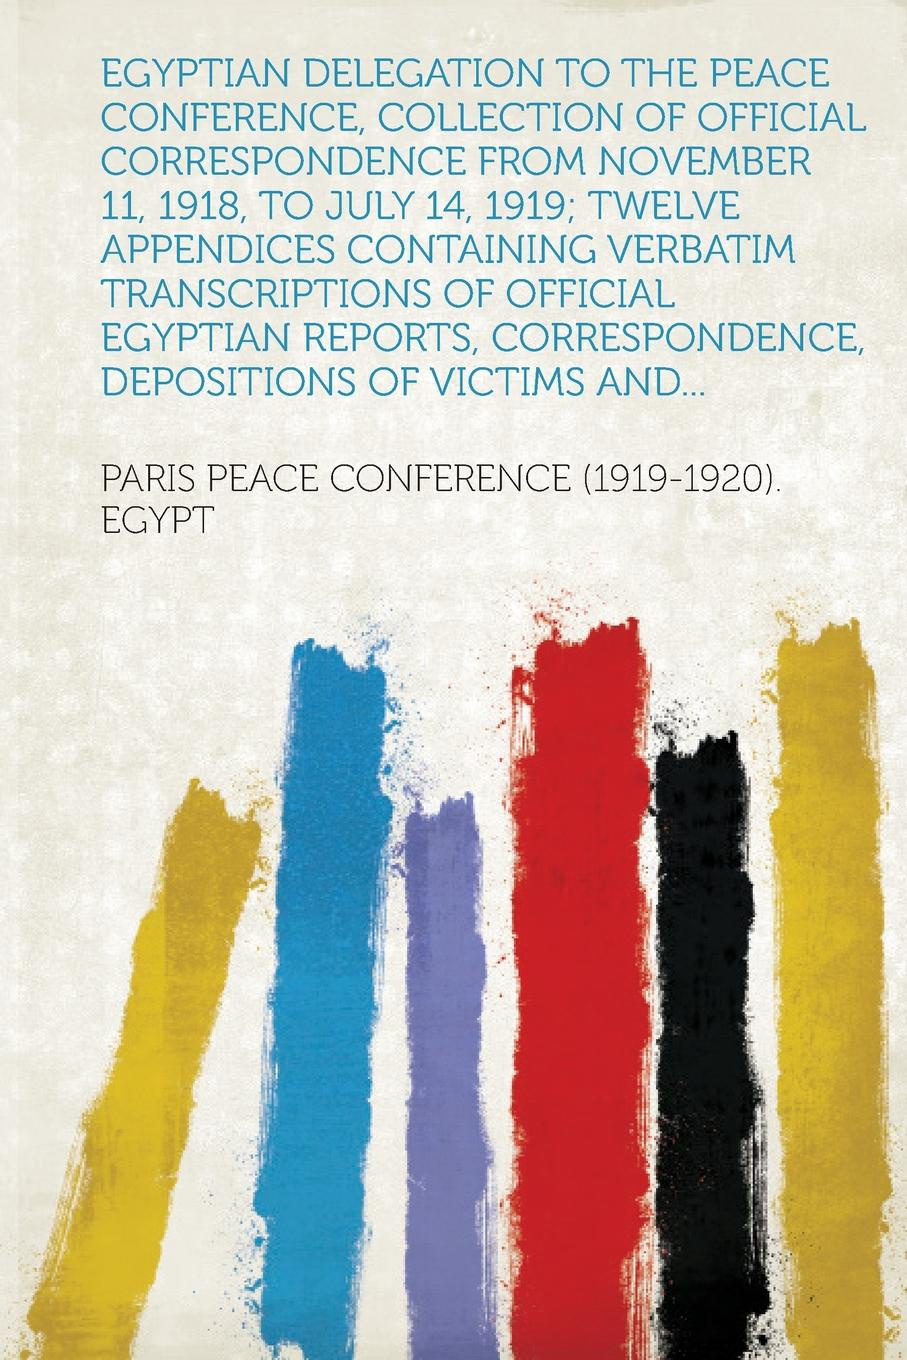 Egyptian Delegation to the Peace Conference, Collection of Official Correspondence from November 11, 1918, to July 14, 1919; Twelve Appendices Containing Verbatim Transcriptions of Official Egyptian Reports, Correspondence, Depositions of Victims ...